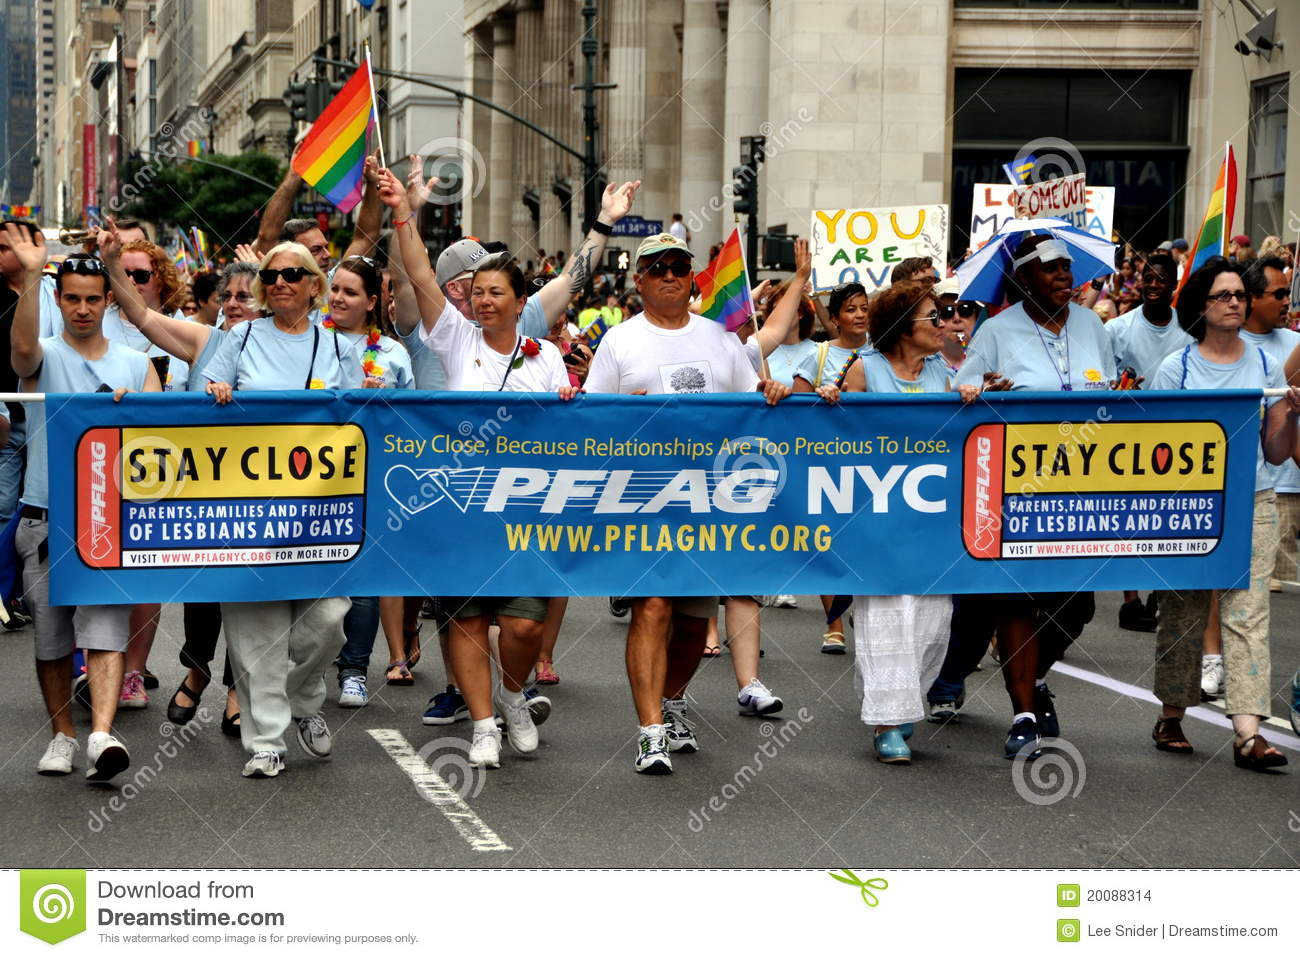 Gay Group to March in NYC St. Patrick's Day Parade